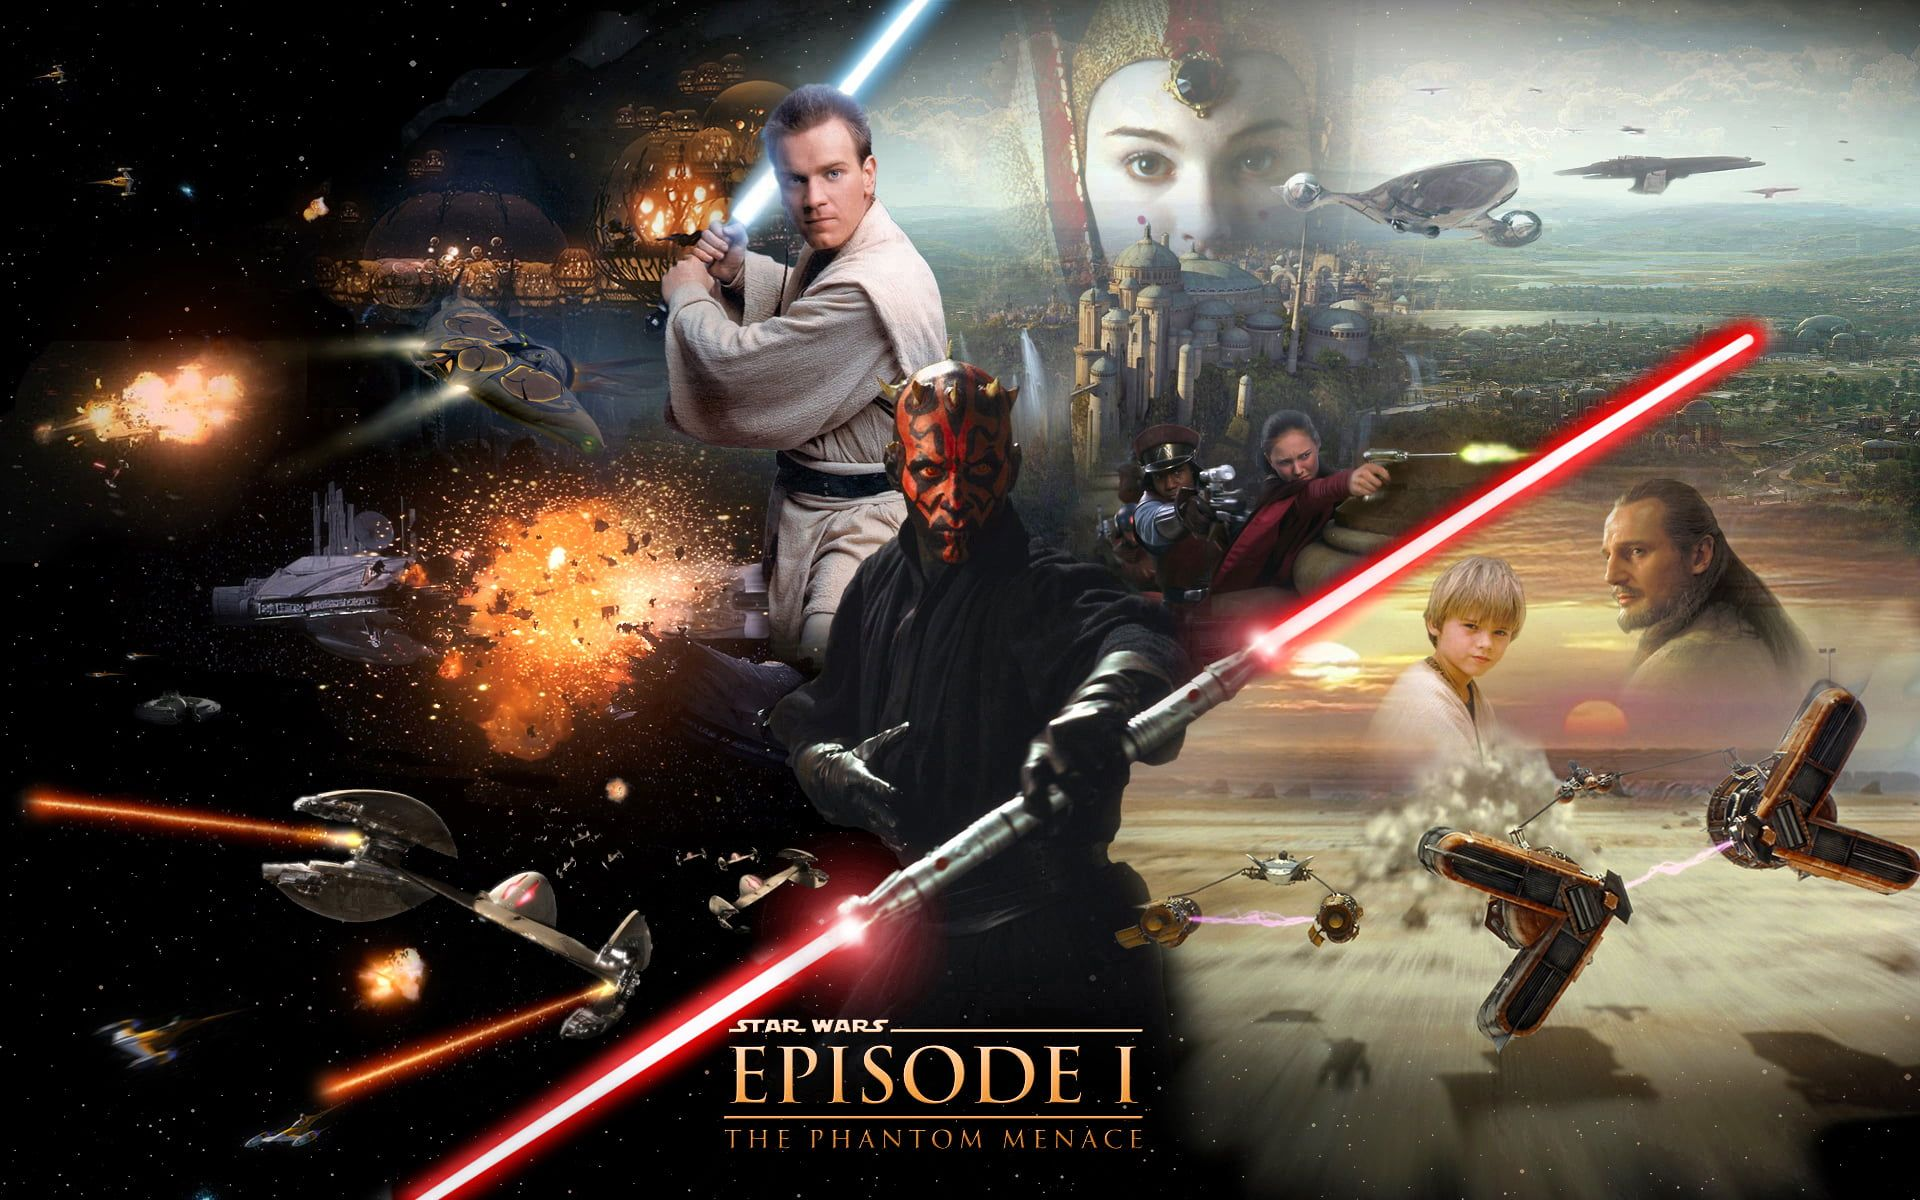 Star Wars Episode 1 The Phantom Menace Digital Wallpaper Star Wars Star Wars Darth Maul Lightsaber Lig In 2020 Star Wars Poster Star Wars Episodes The Phantom Menace